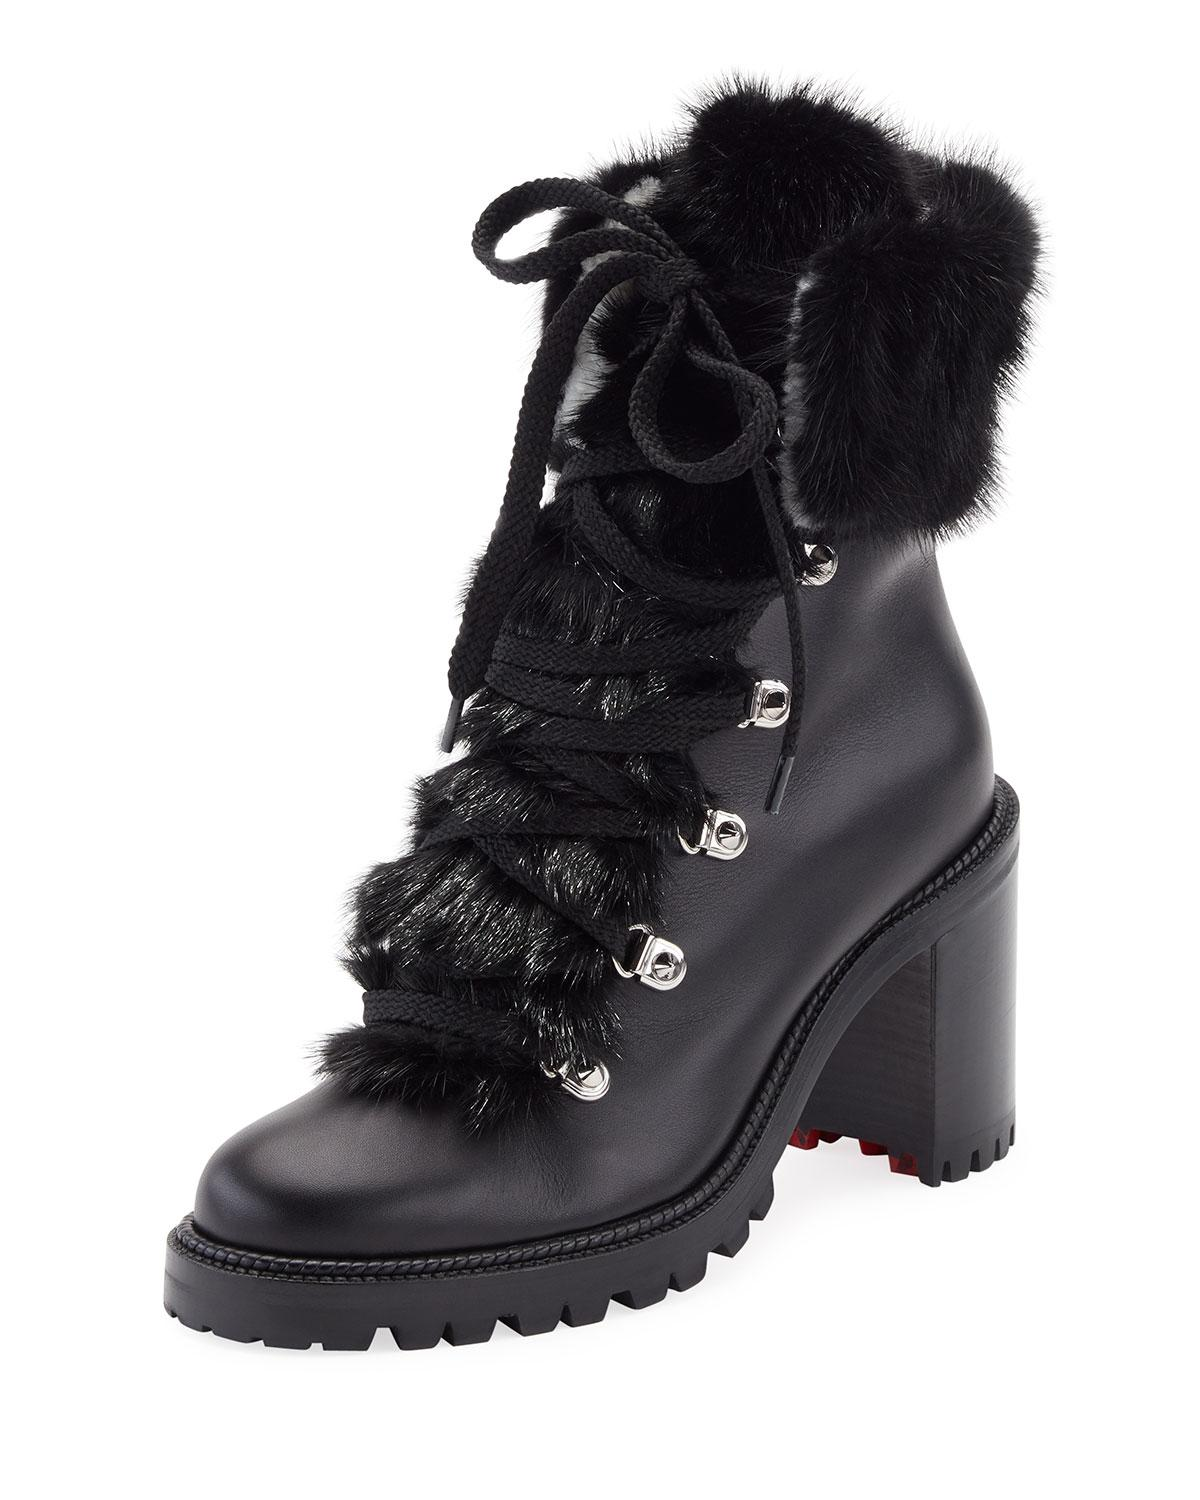 Christian LouboutinFanny 70 Fur-Trimmed Leather Lace-Up Booties JCFWG